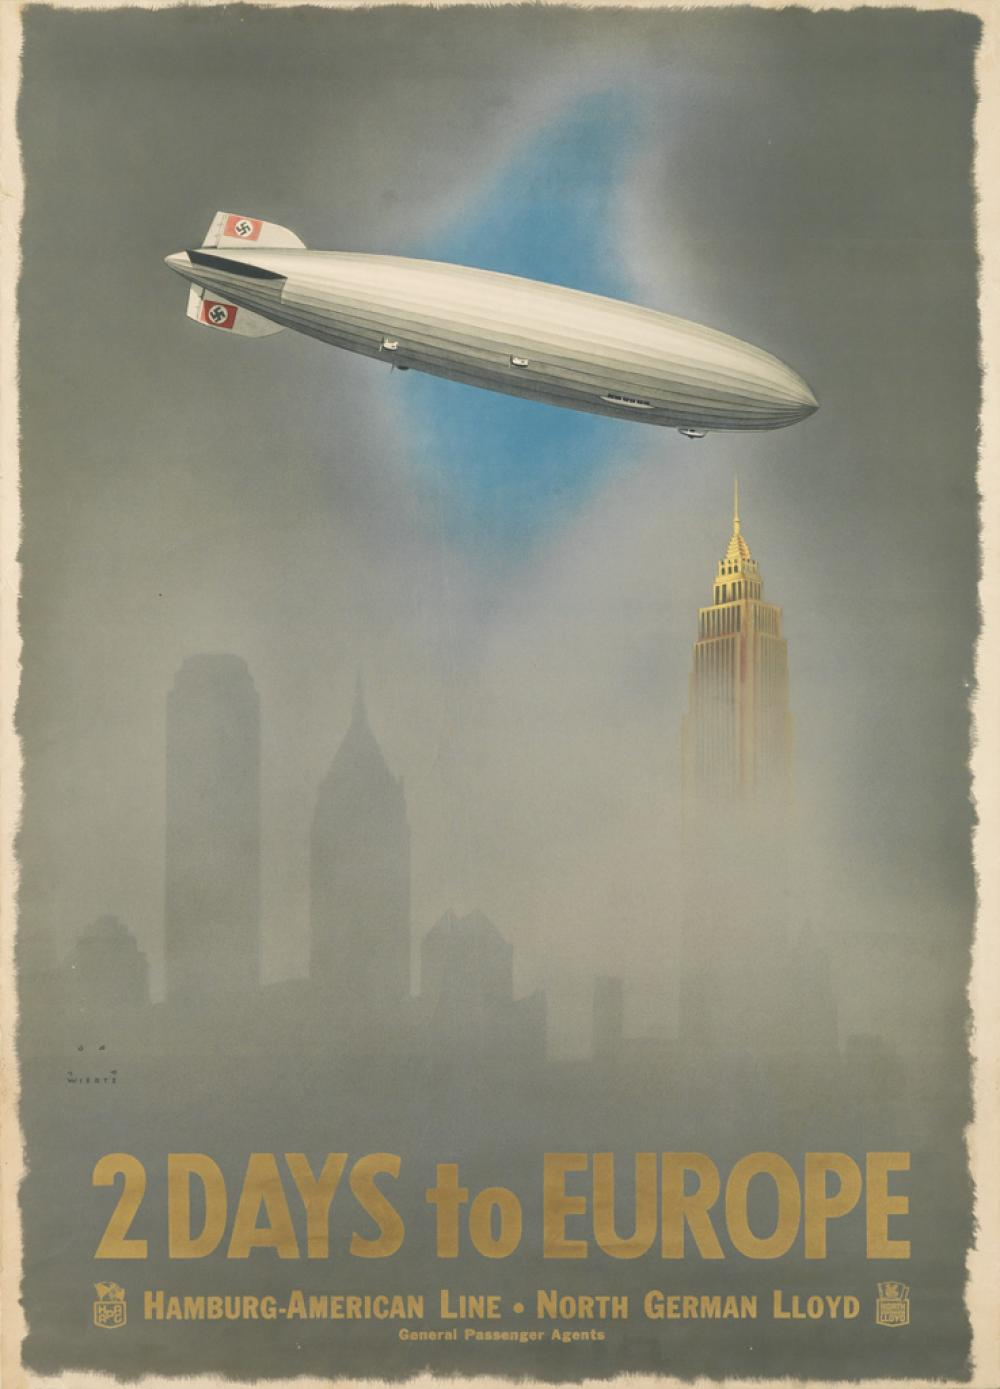 JUPP WIERTZ (1881-1939). 2 DAYS TO EUROPE / HAMBURG - AMERICAN LINE. 1936. 32x23 inches, 82x59 cm. Eschebach & Schaefer, Leipzig.